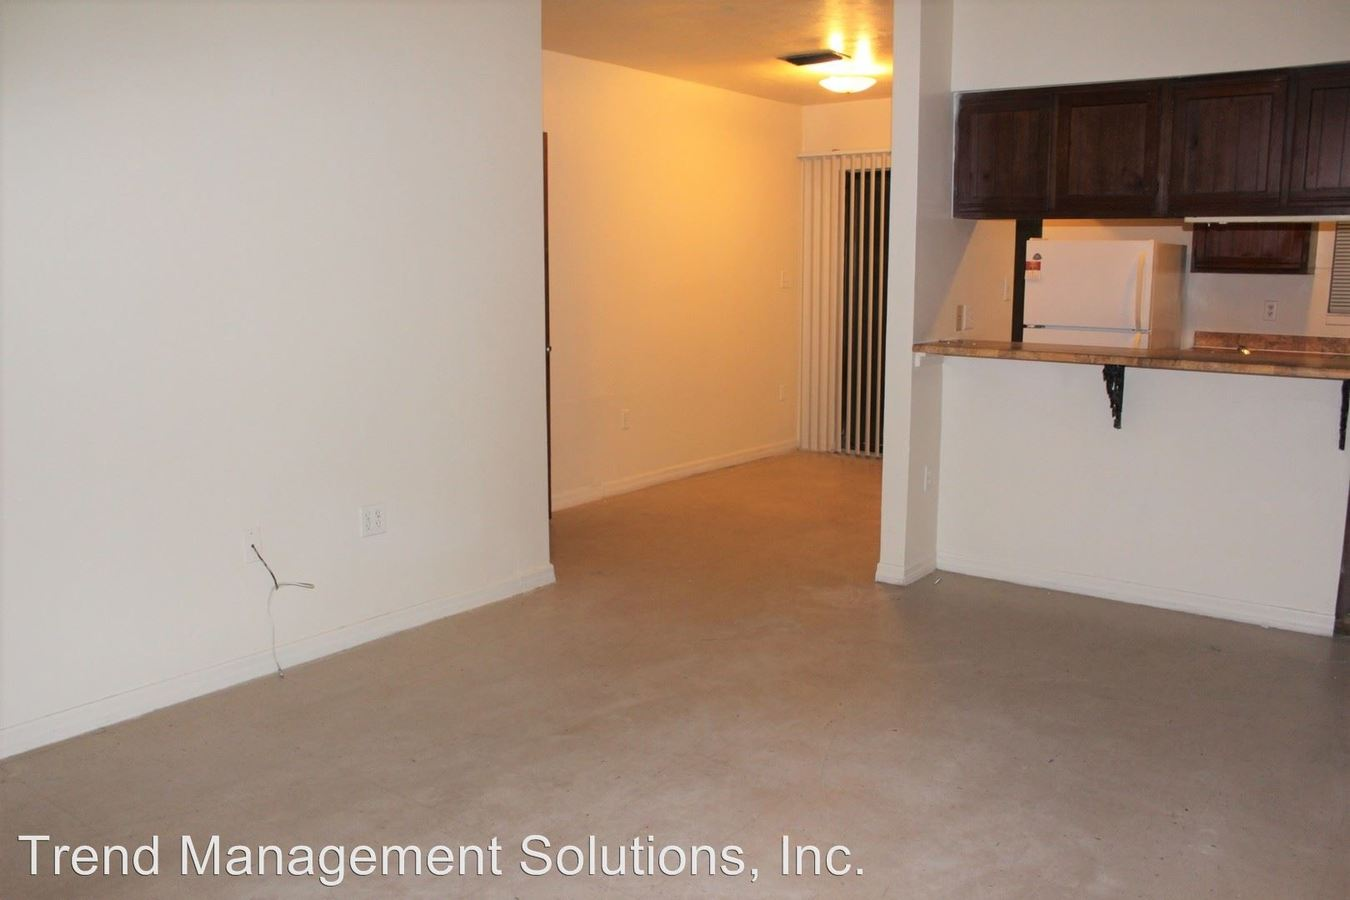 3 Bedrooms 2 Bathrooms Apartment for rent at 626-628 Nw 13th Terrace in Gainesville, FL